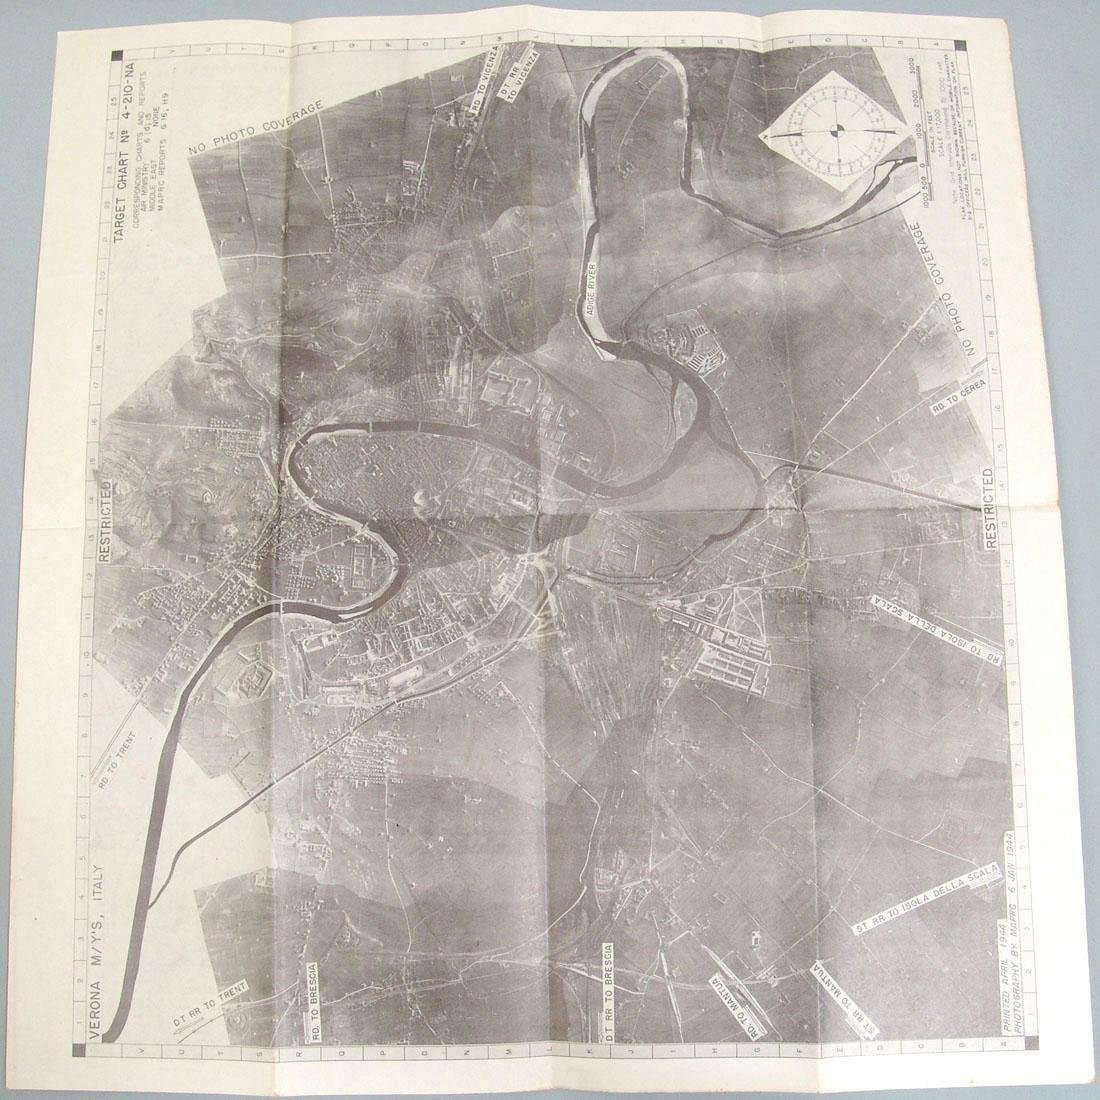 Original 1944 WWII Allied Air Crew Bombing Map - Italy - 2